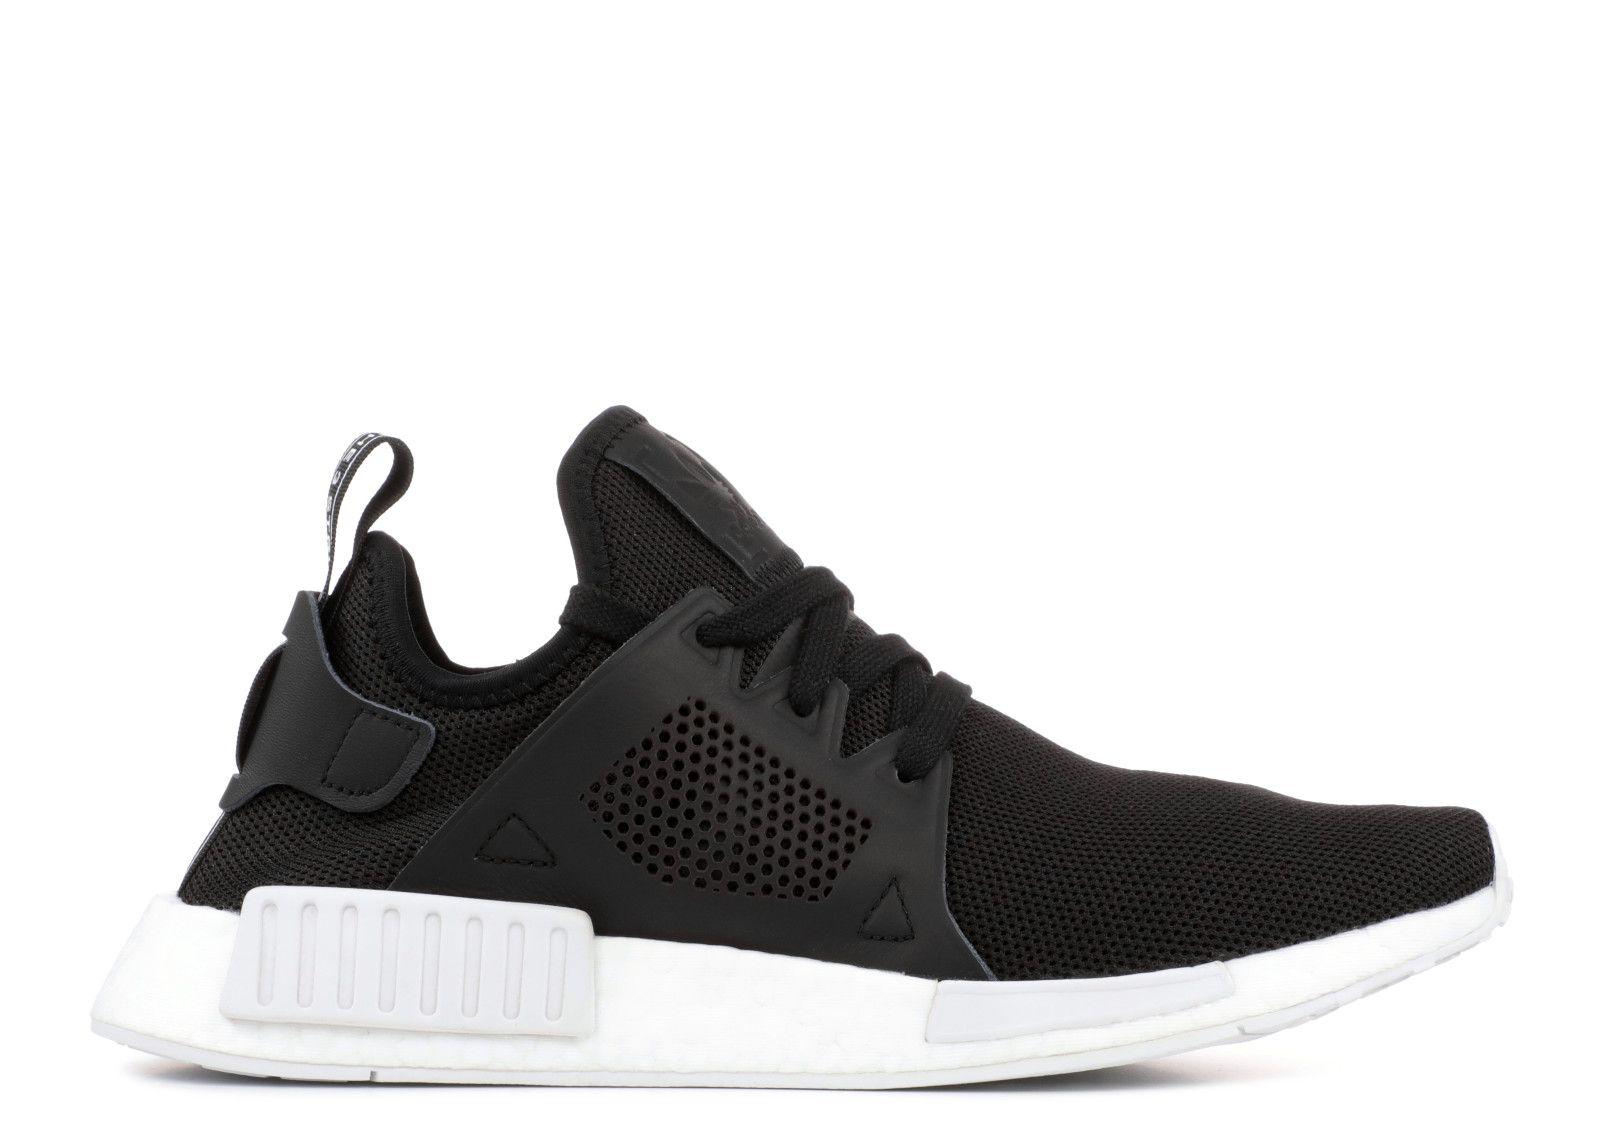 d47c0a2d6c4a8 Discover ideas about Adidas Running Shoes. Best Sale 2018 NMD XR1 HENRY  POOLE midnight blue core black white CQ2026